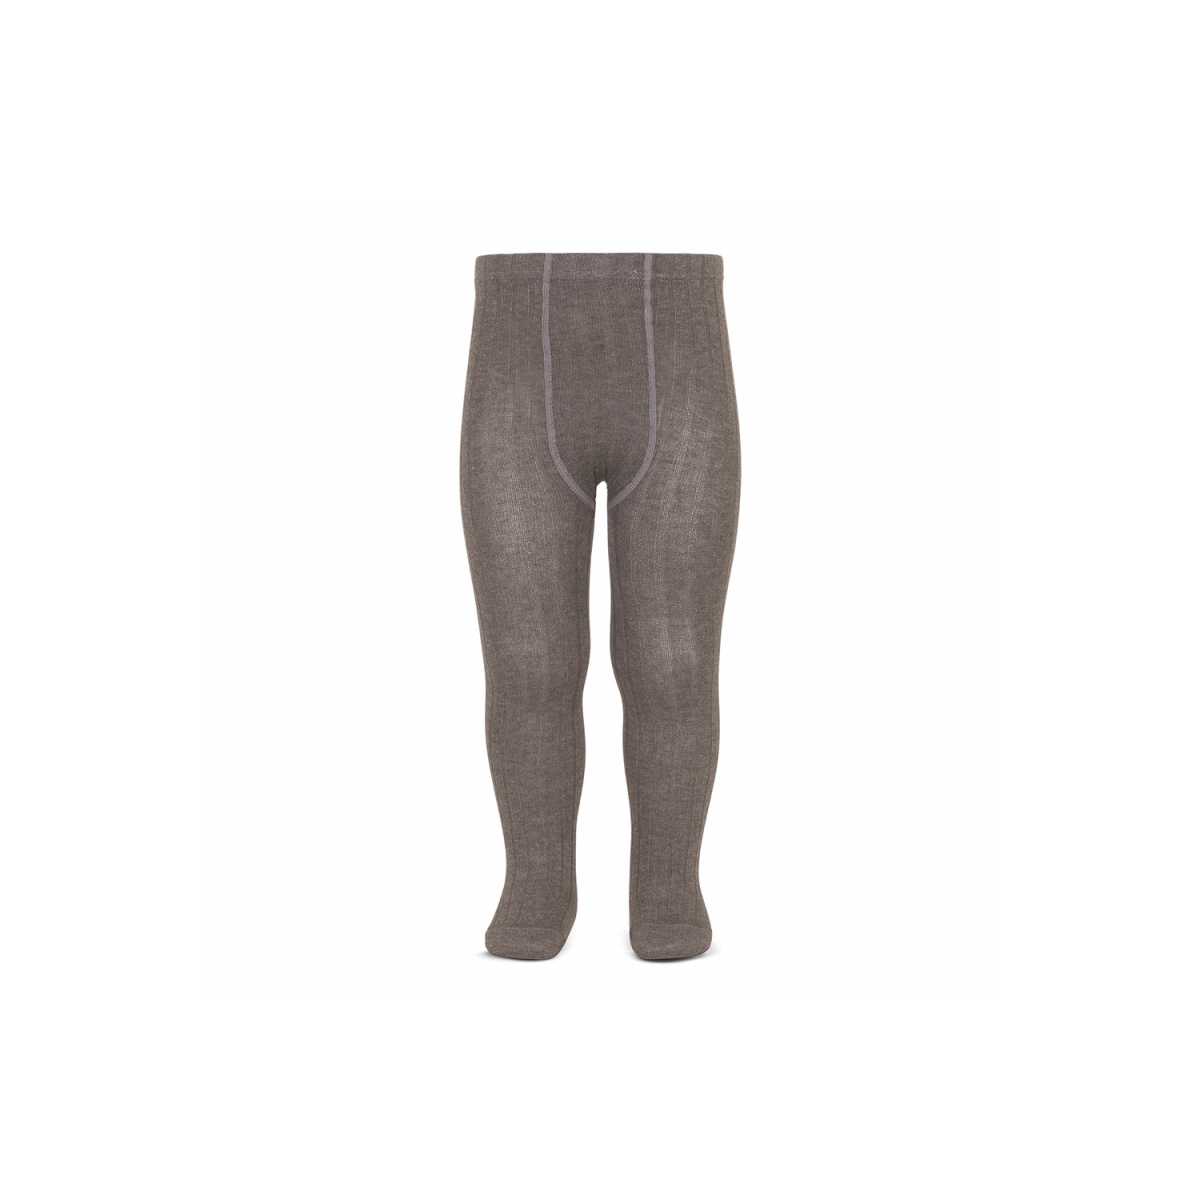 Condor - Wide Ribbed Cotton Tights trunk - 1